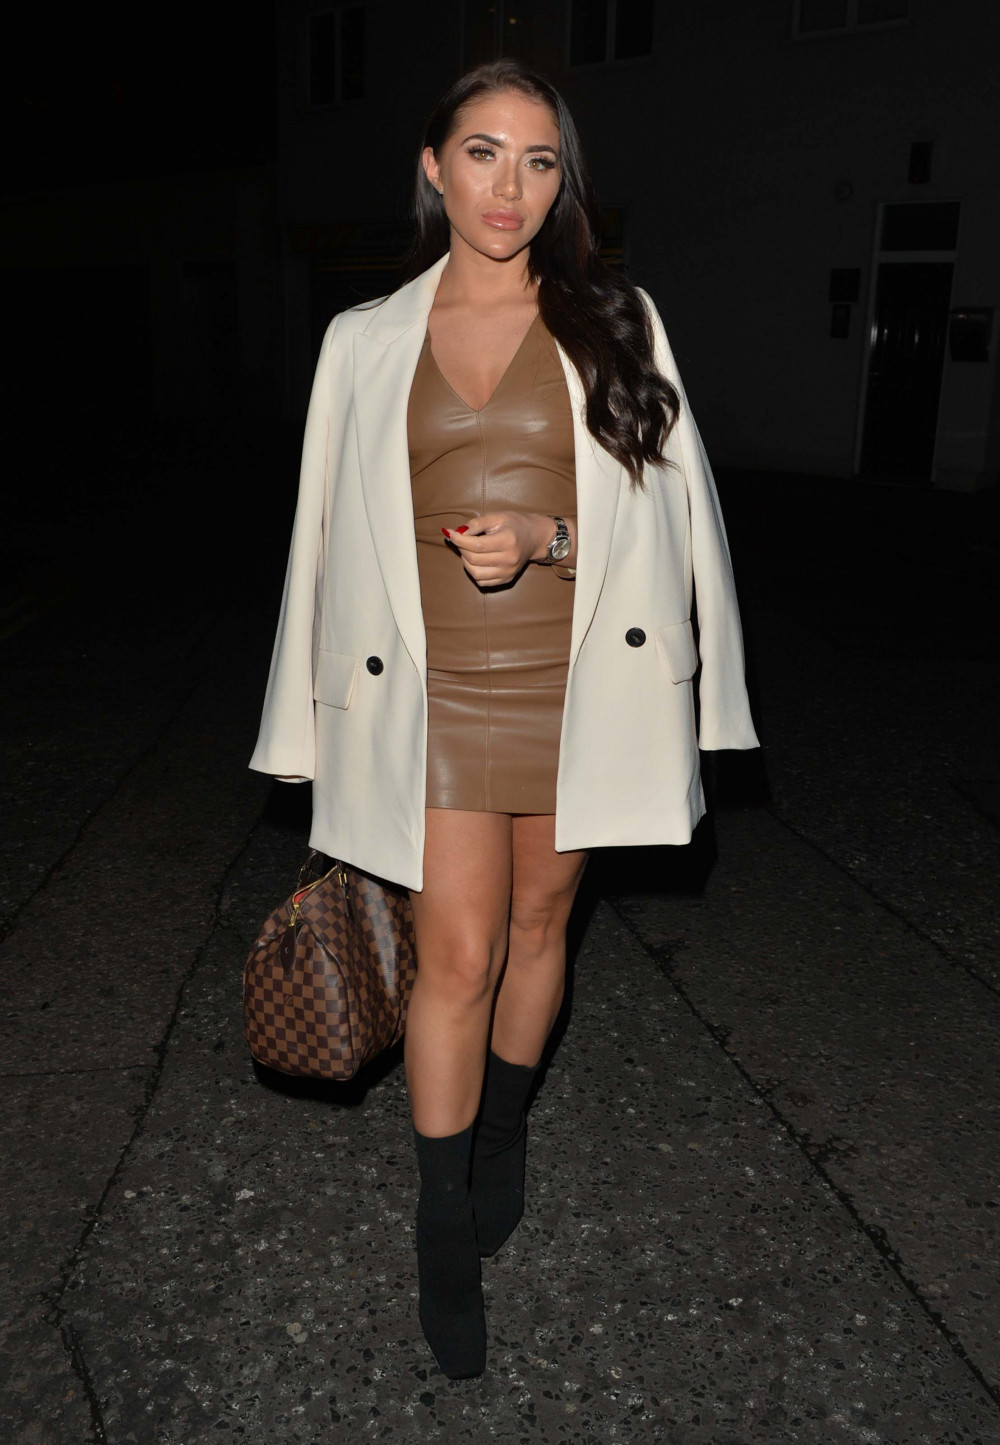 Chloe Brockett seen at Amazonico restaurant in Mayfair, London